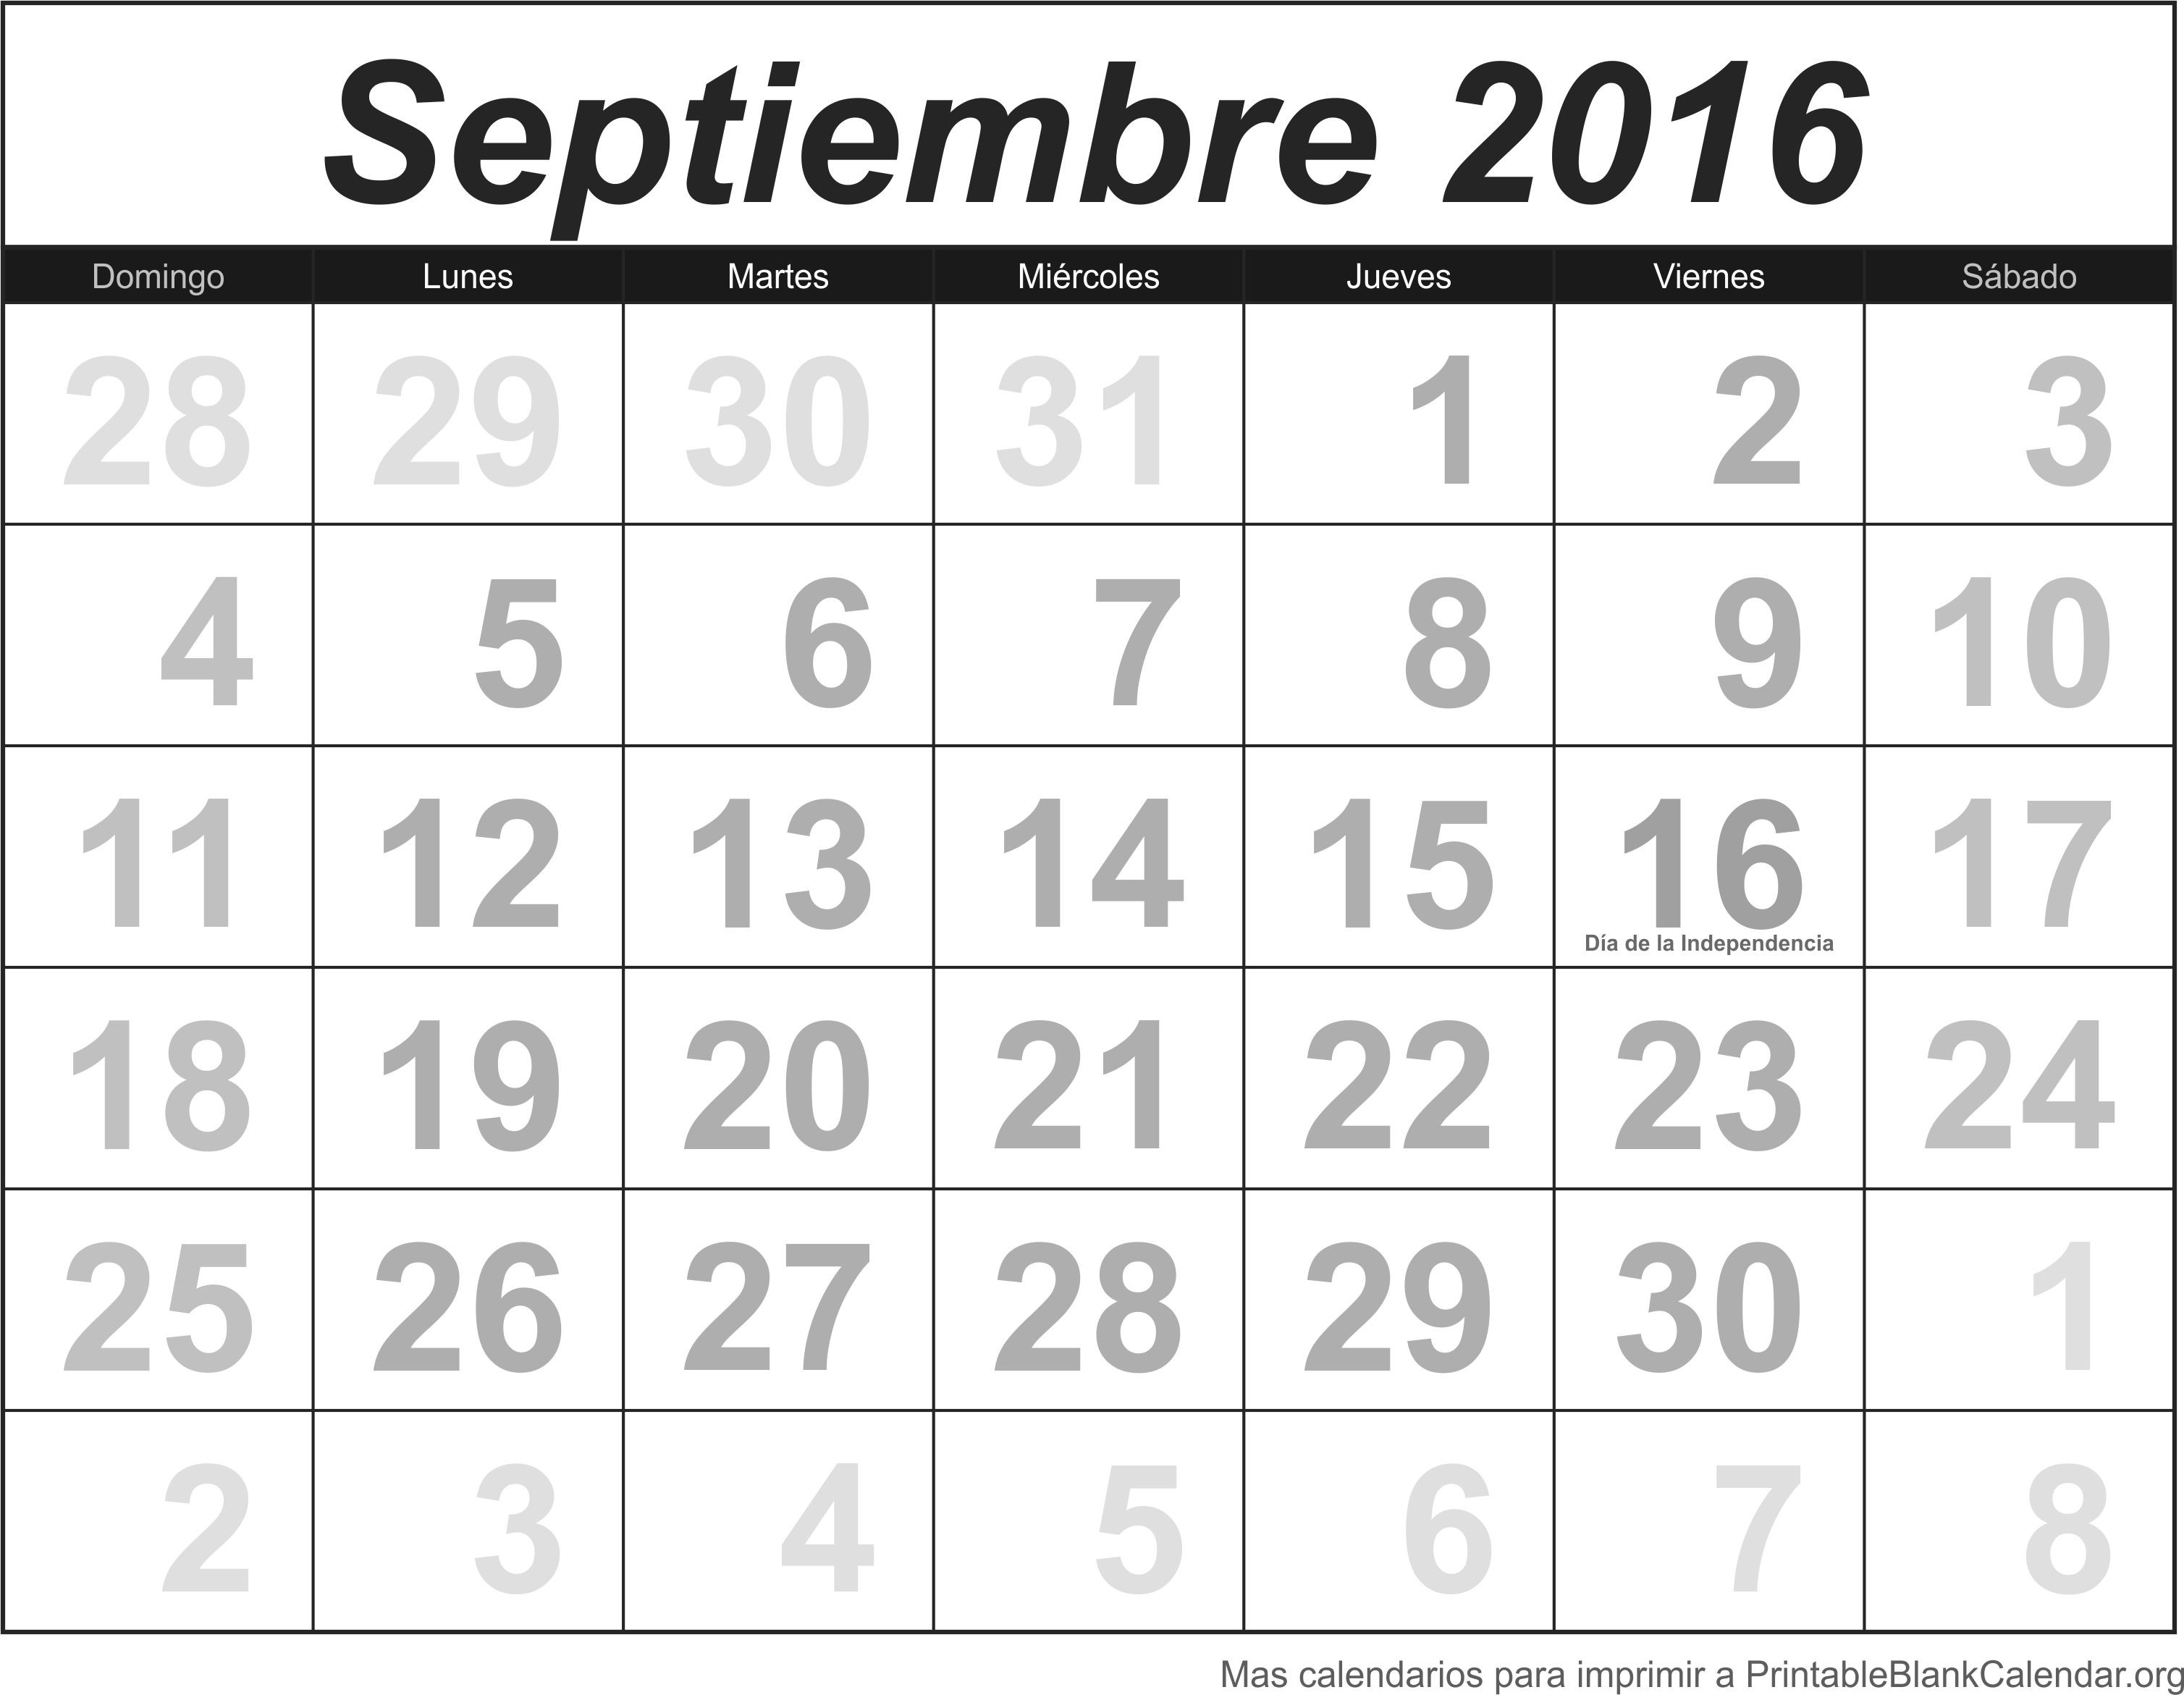 perfect calendario para imprimir sep